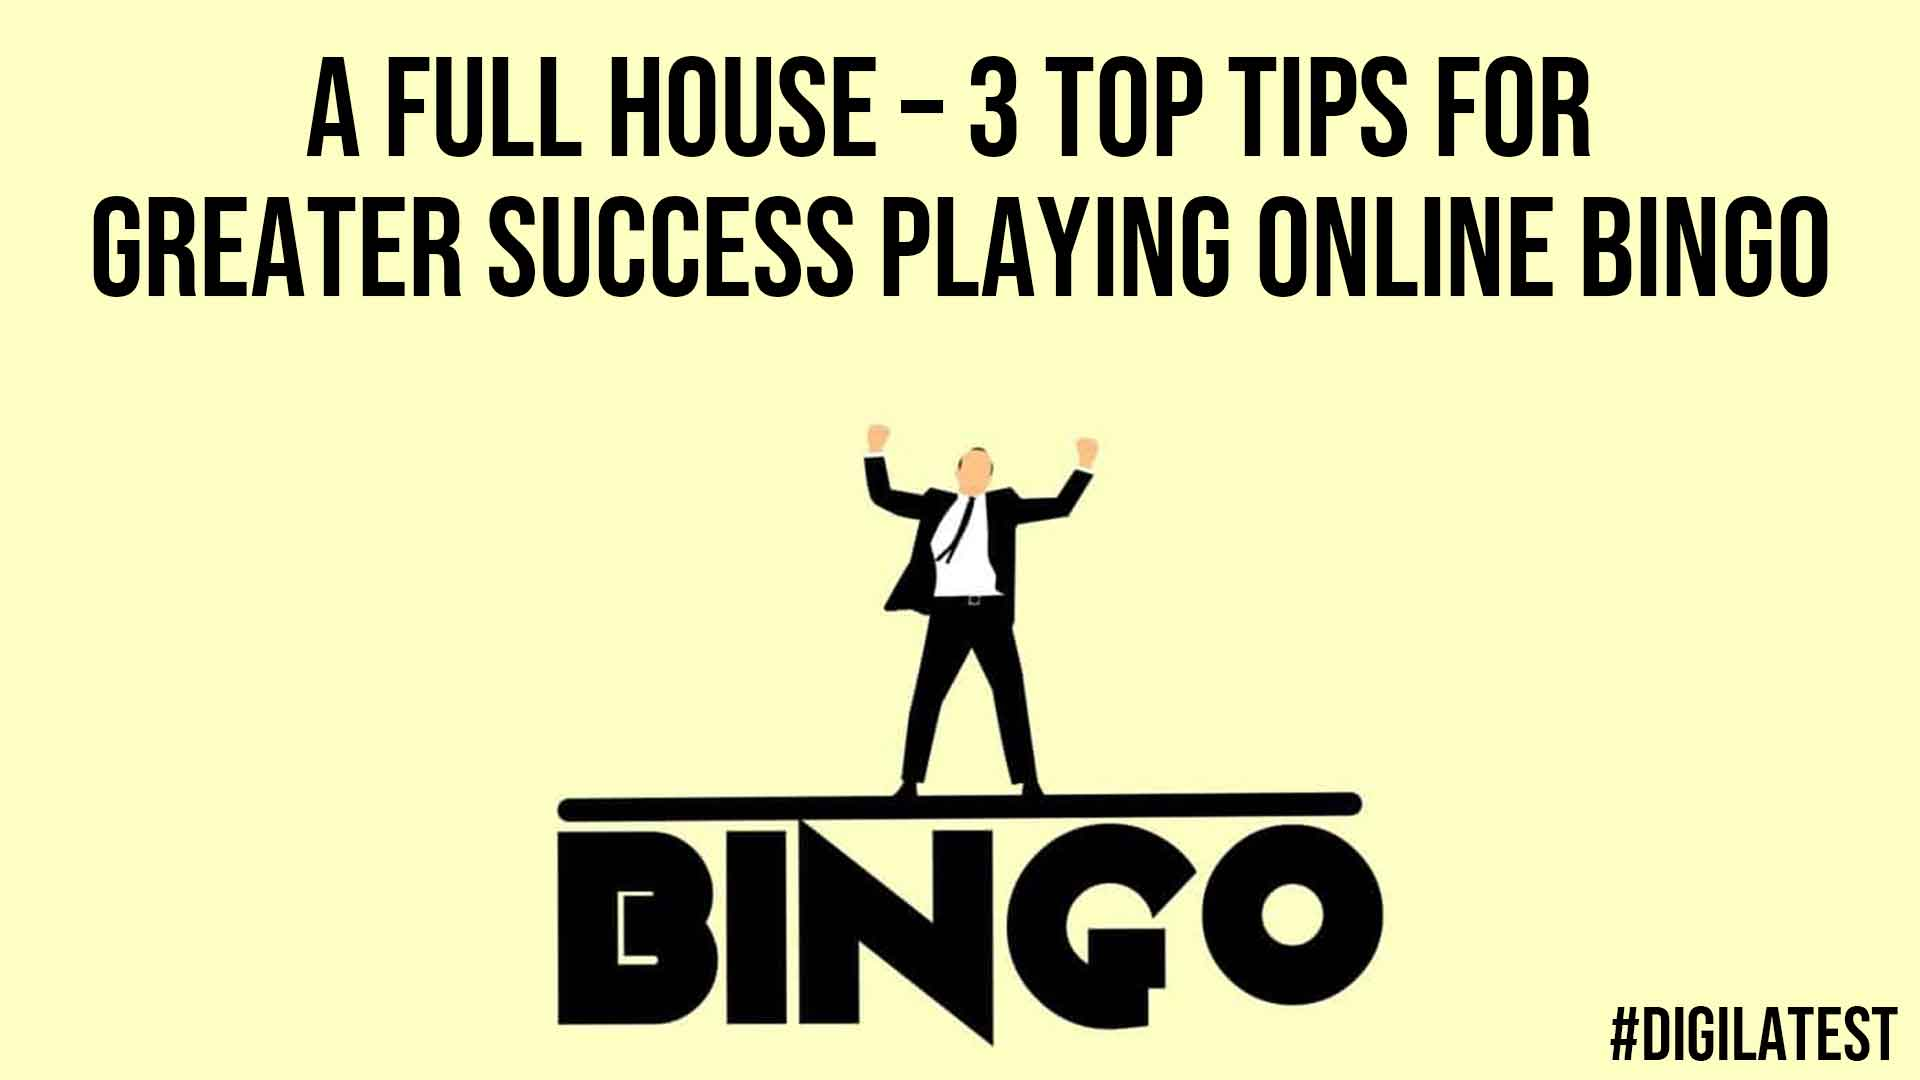 A Full House 3 Top Tips for Greater Success Playing Online Bingo